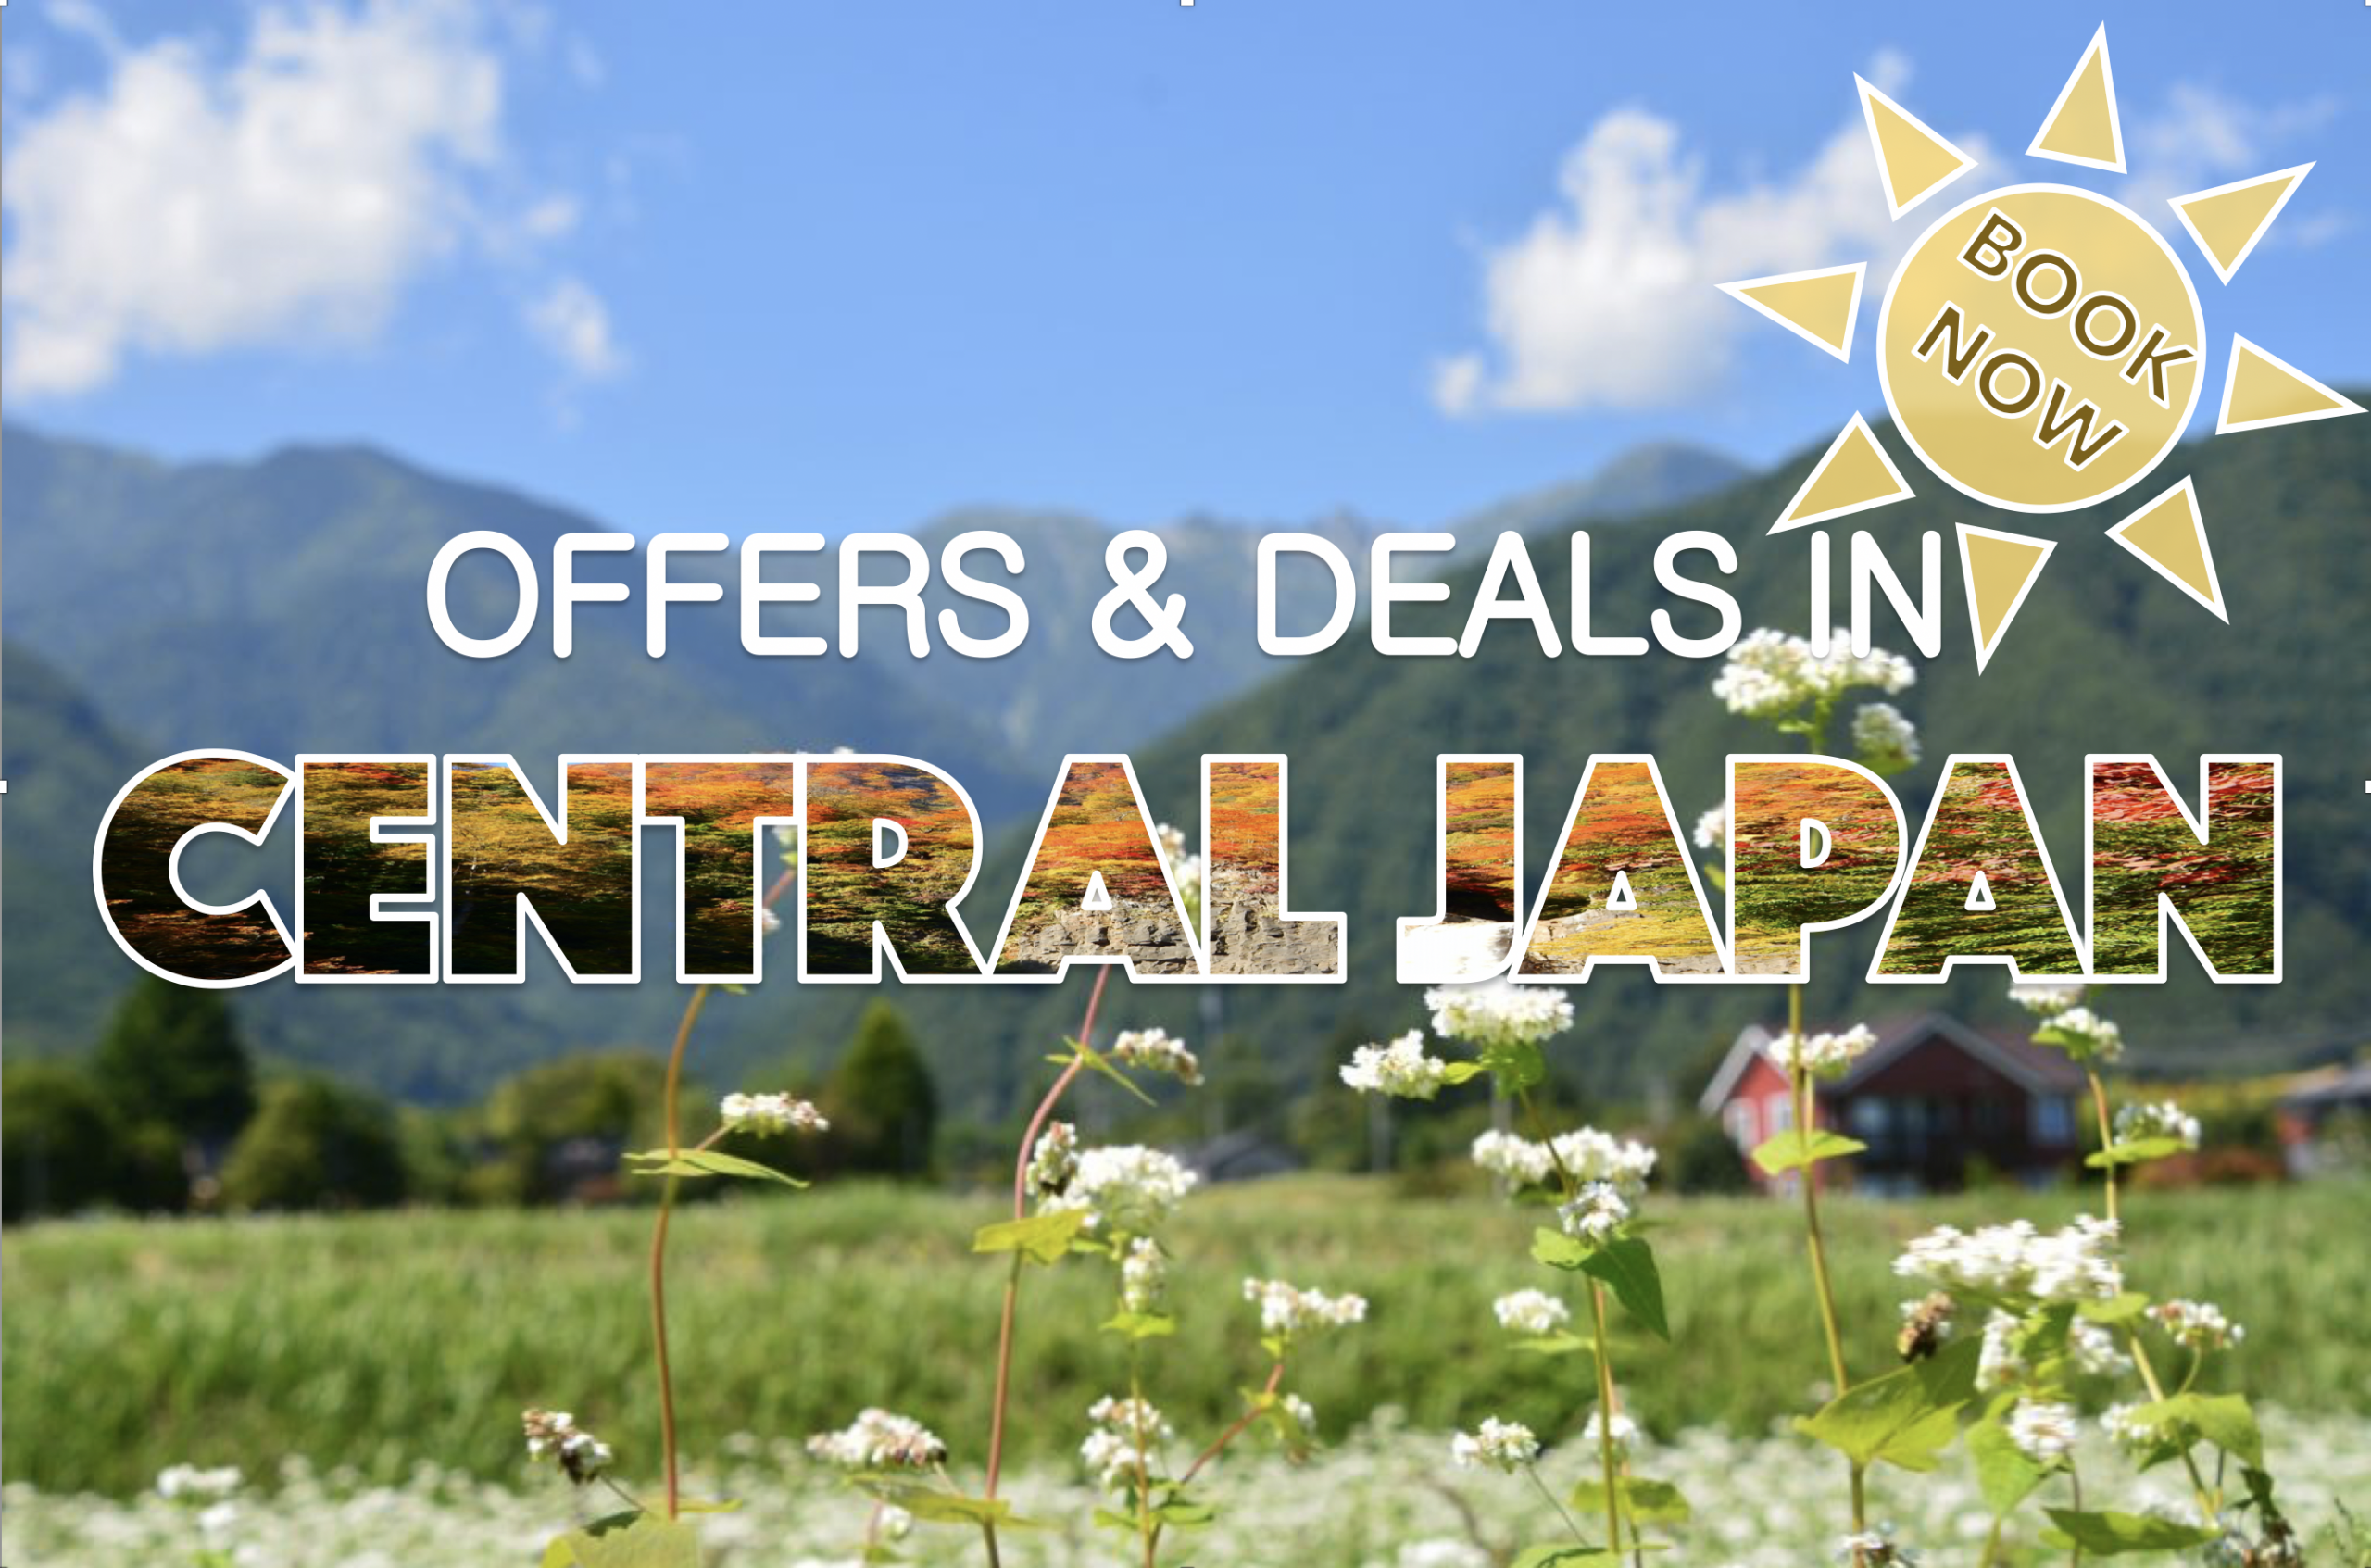 offers-deal-central-japan-banner